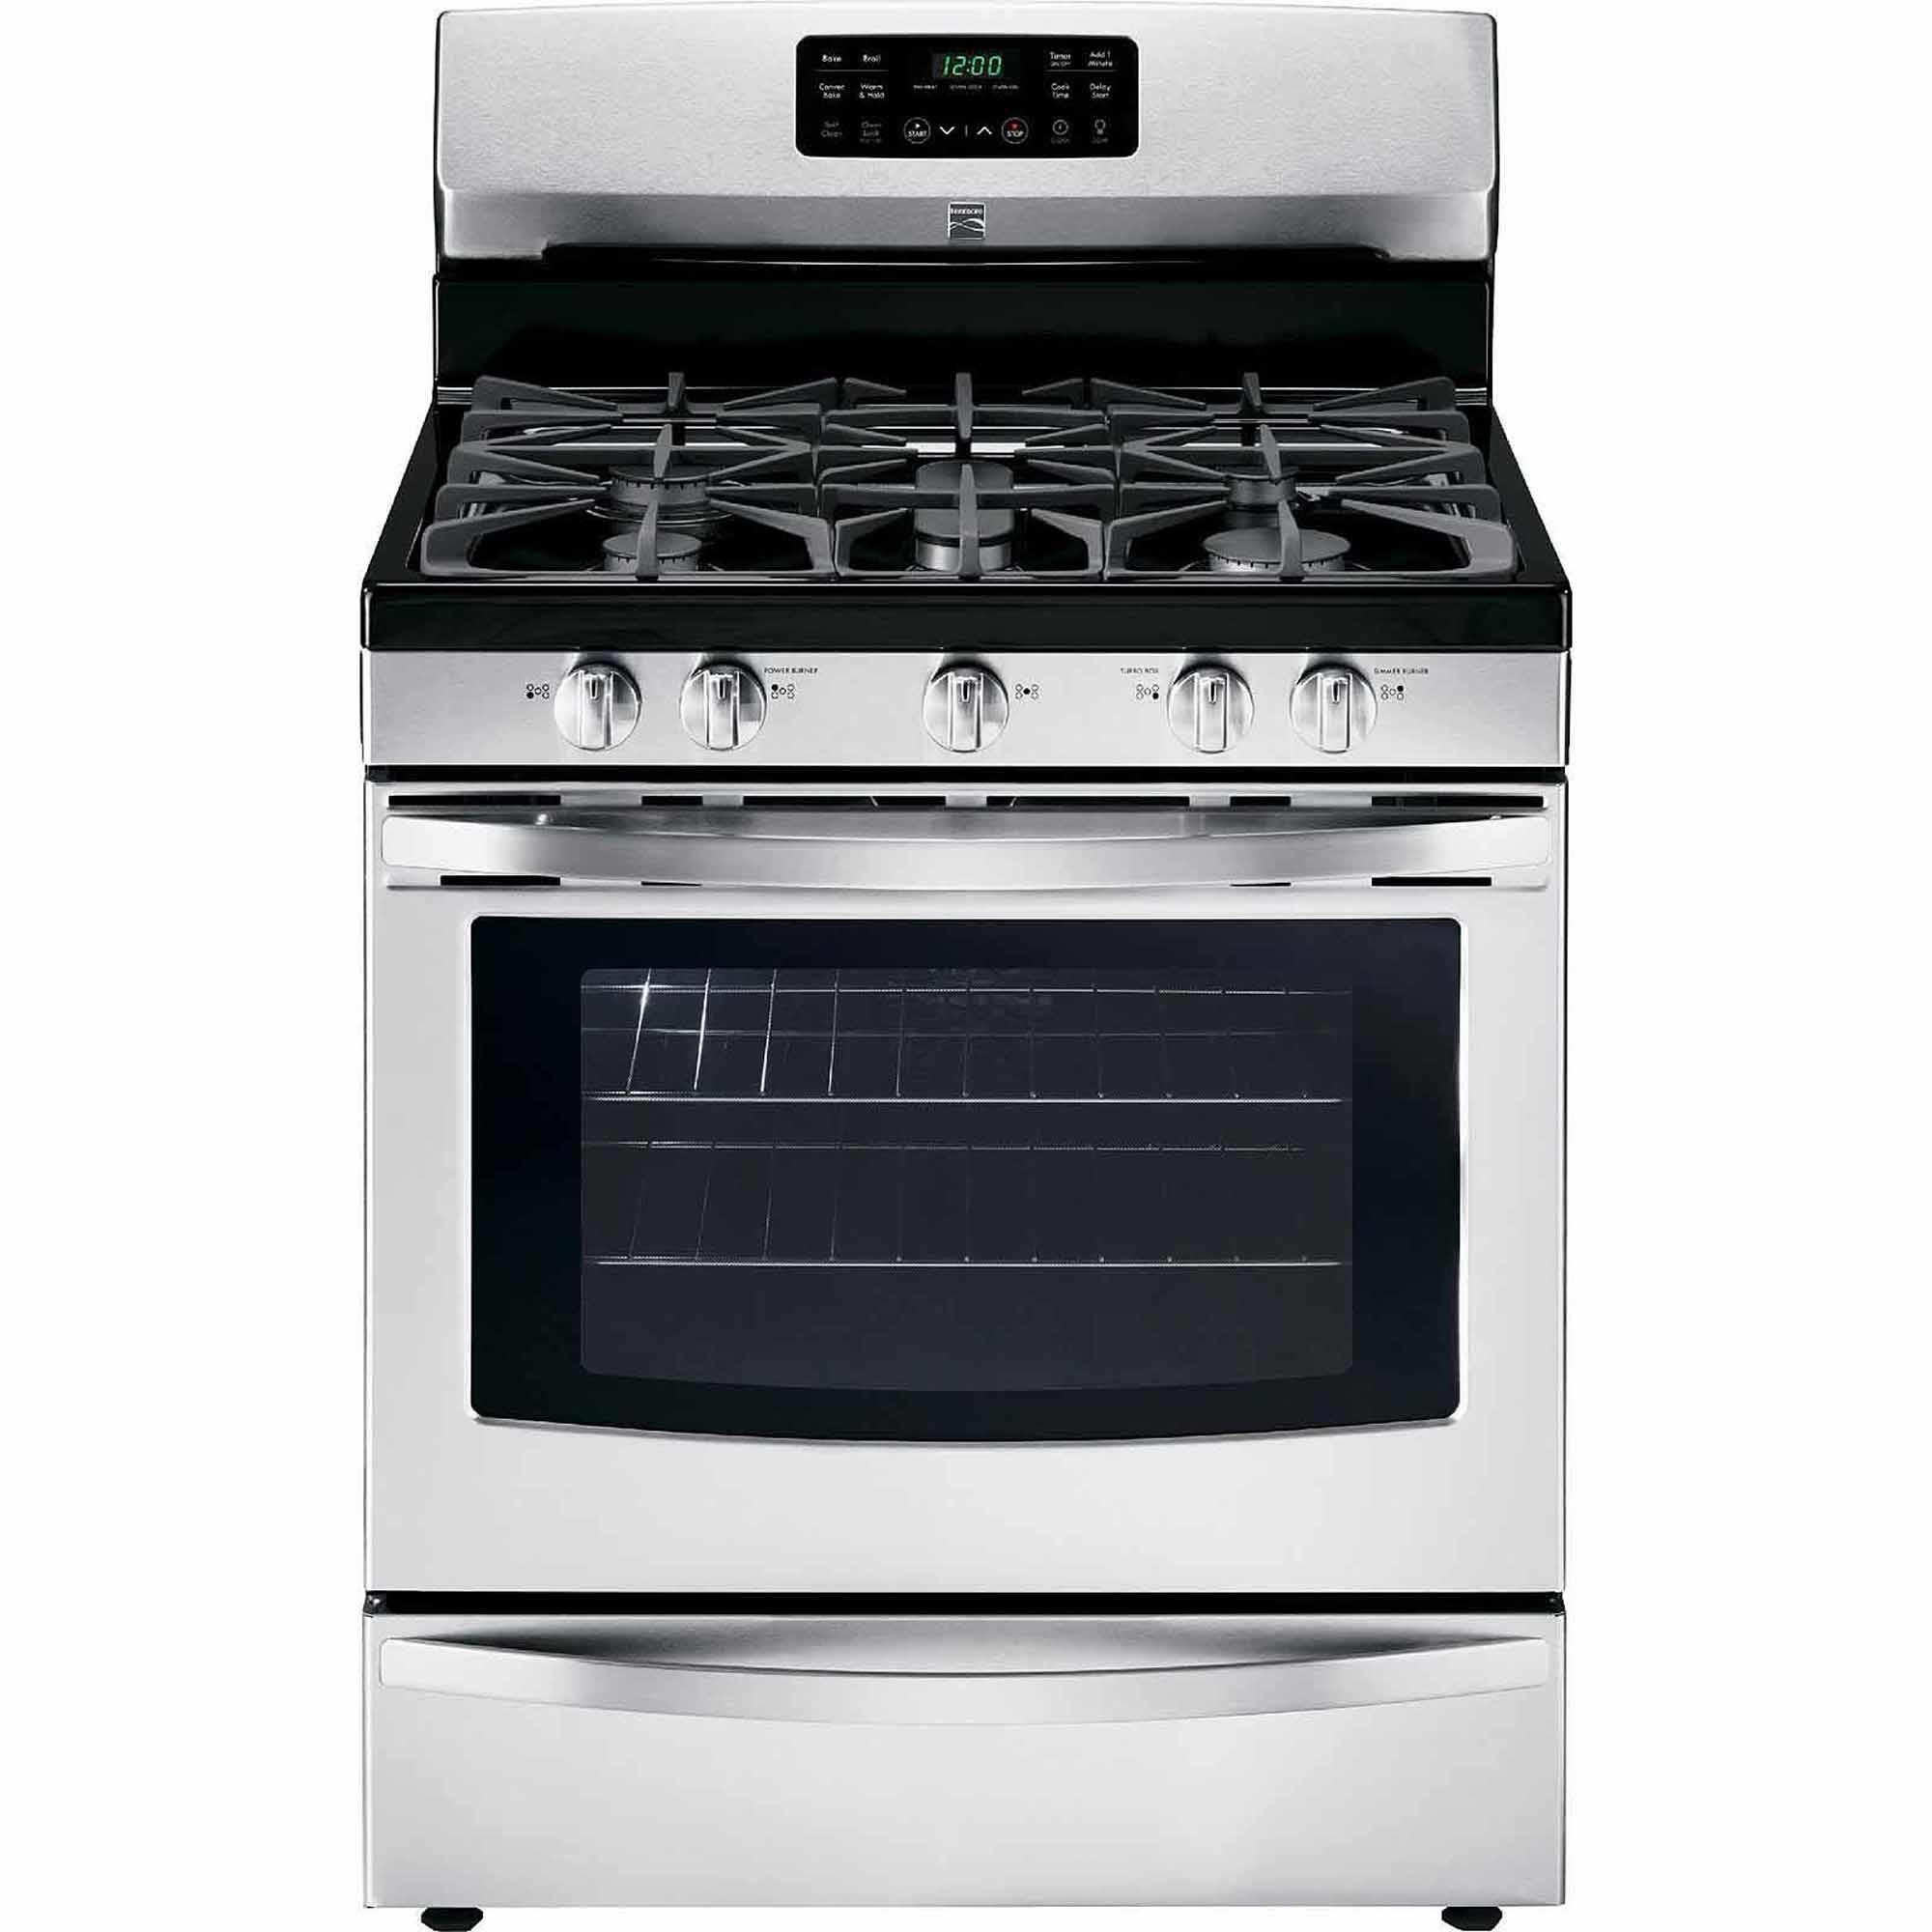 74233-5-0-cu-ft-Freestanding-Gas-Range-w-Convection-Stainless-Steel